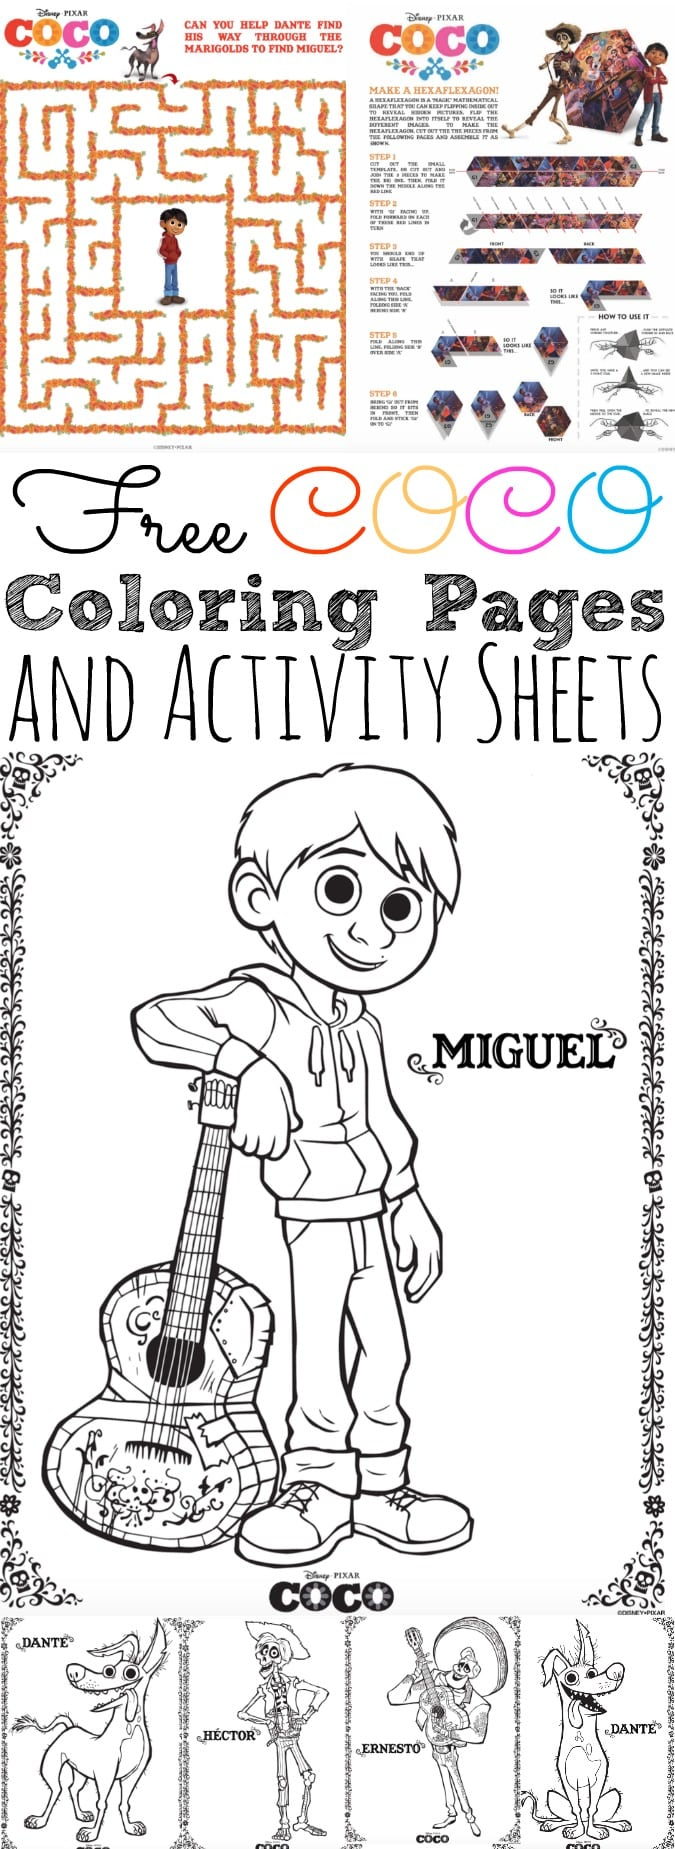 Free Coco Coloring Pages